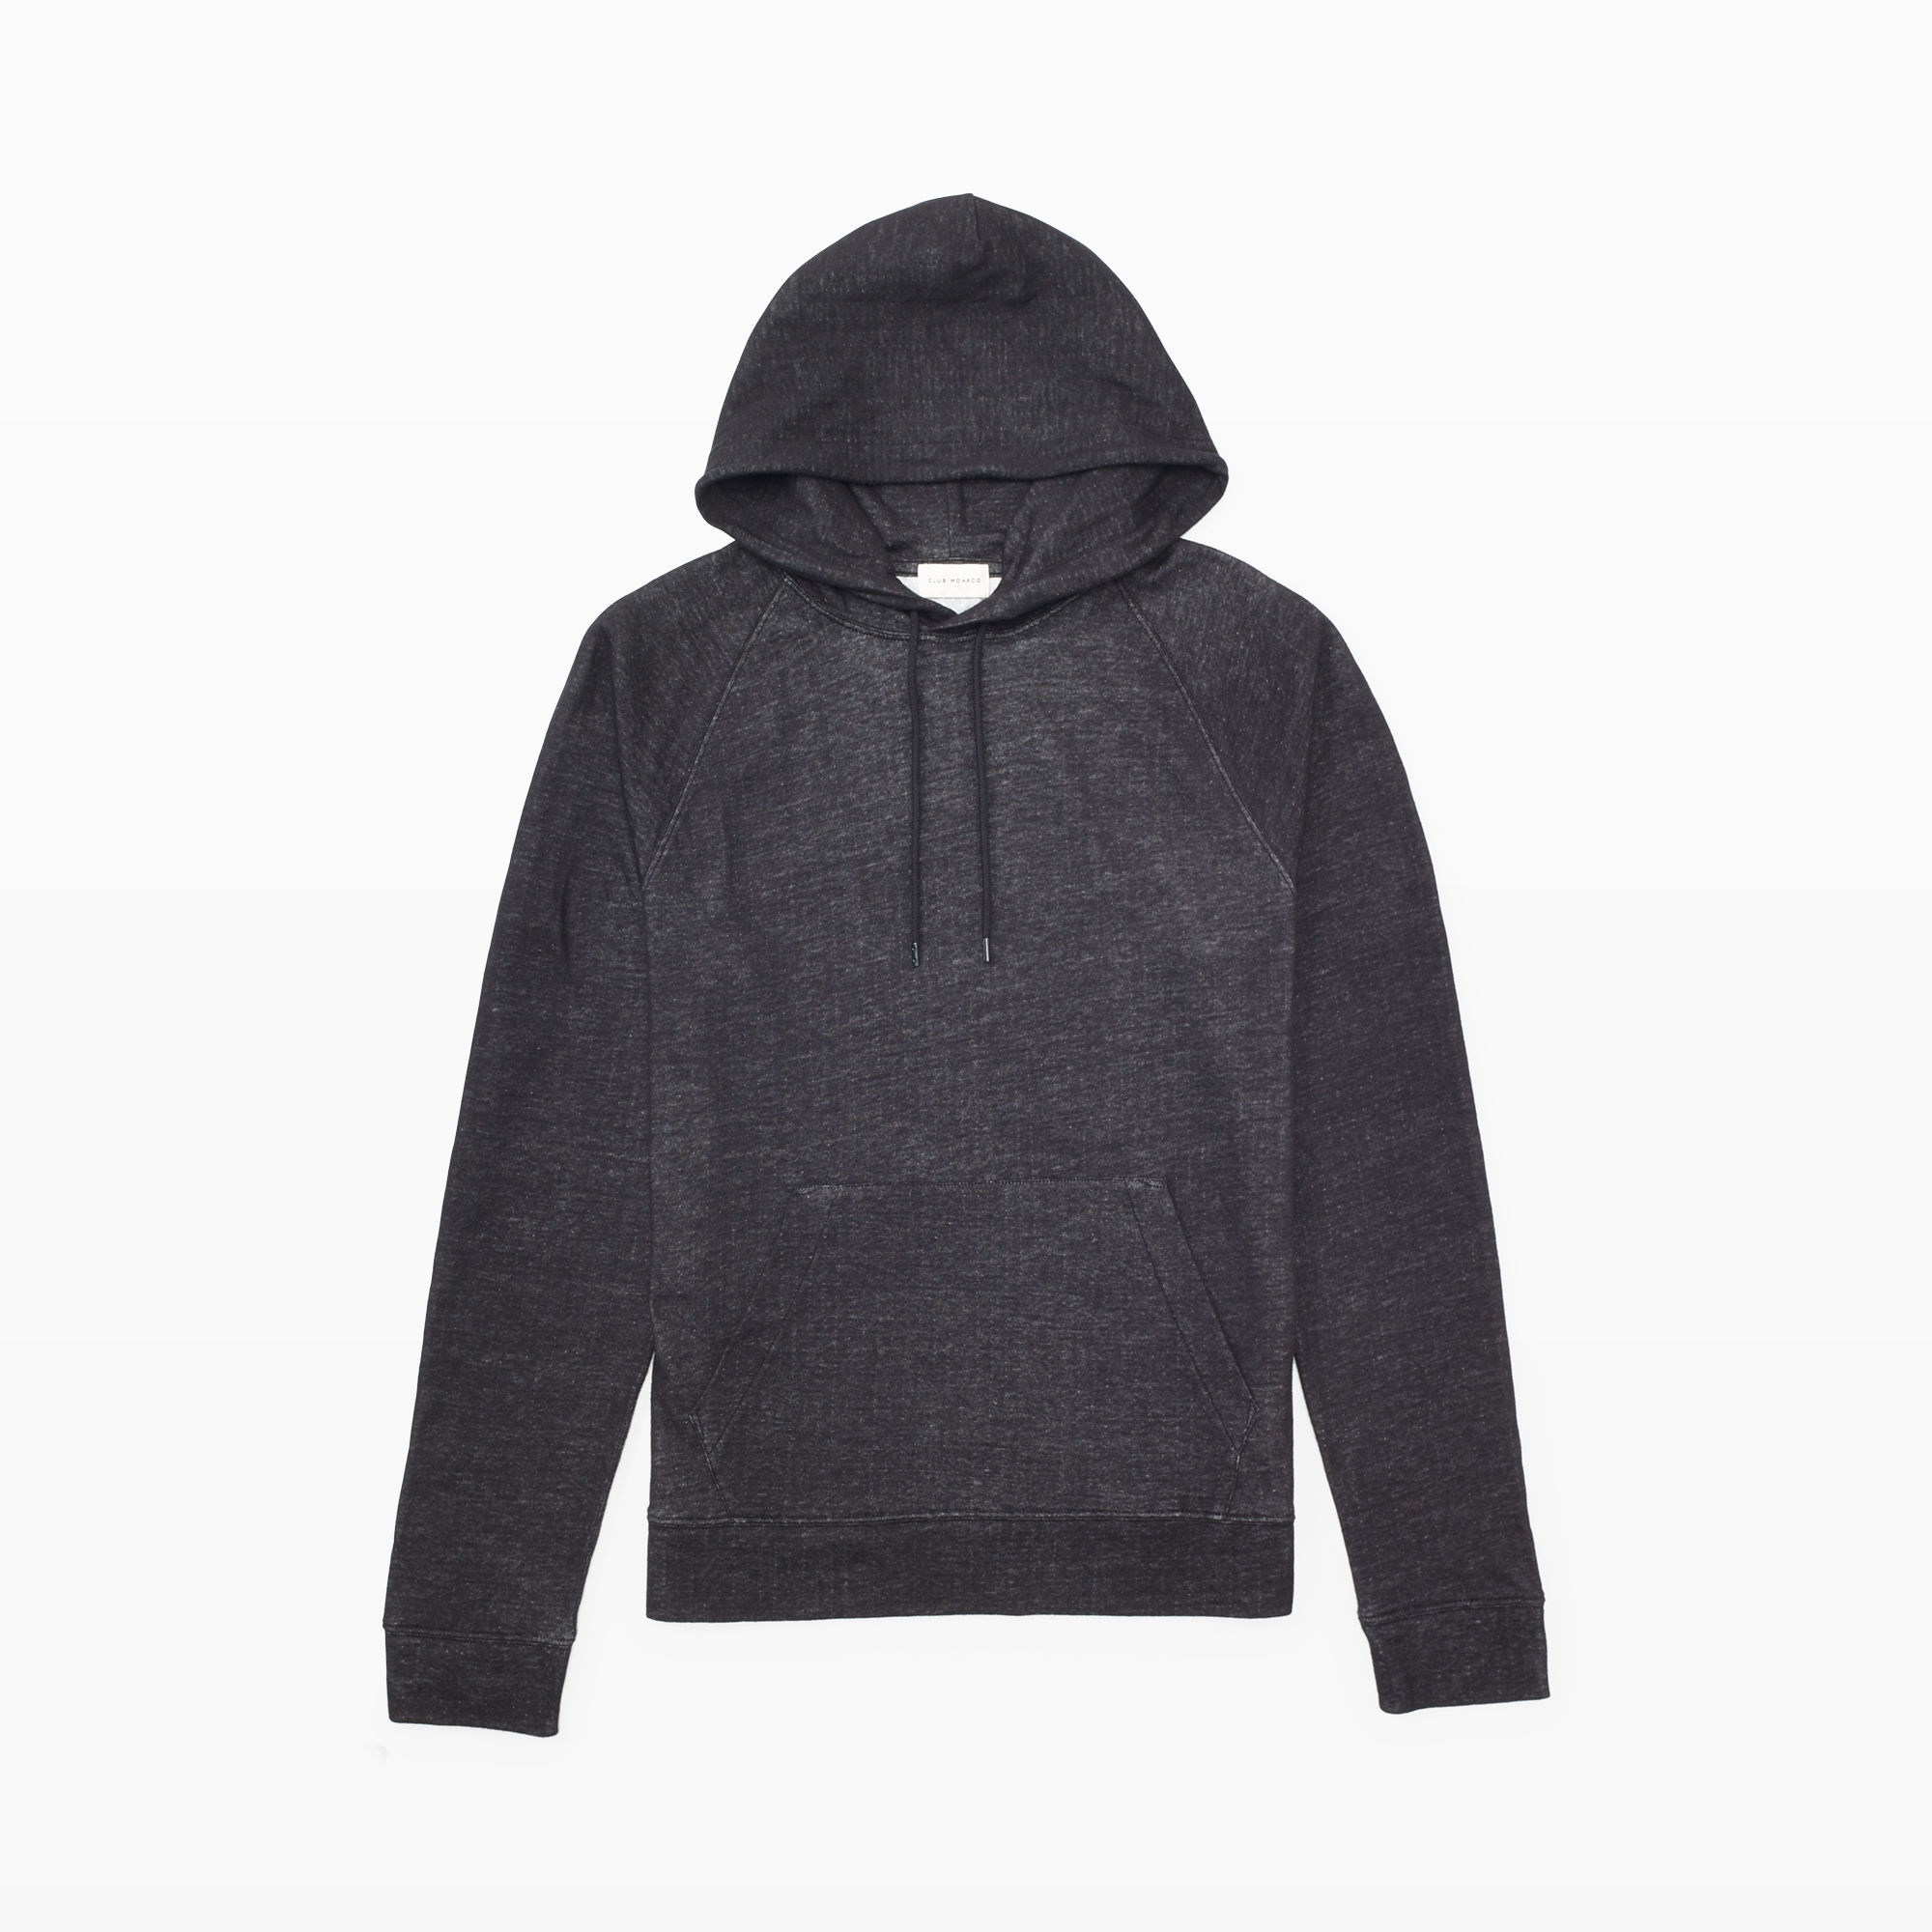 Club monaco Knit Sweater Hoodie in Black for Men | Lyst